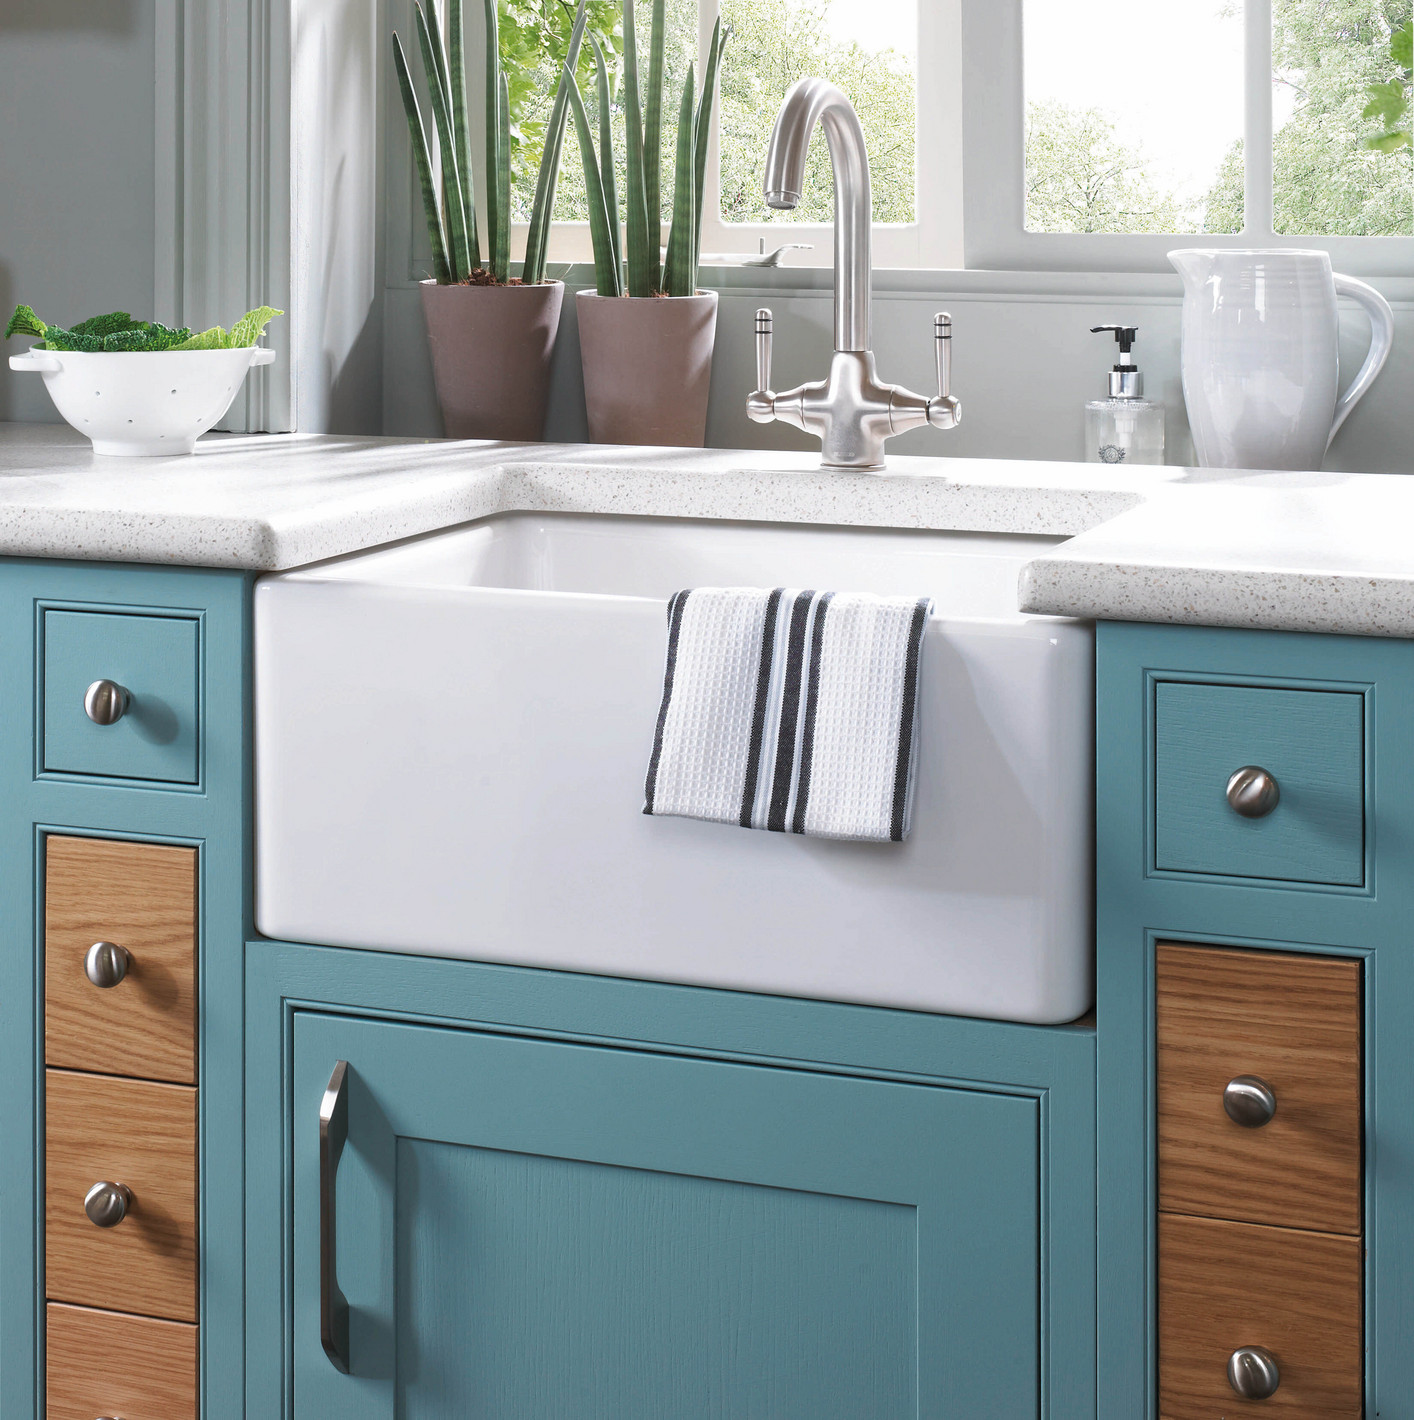 Period Kitchen Designs With A Style For